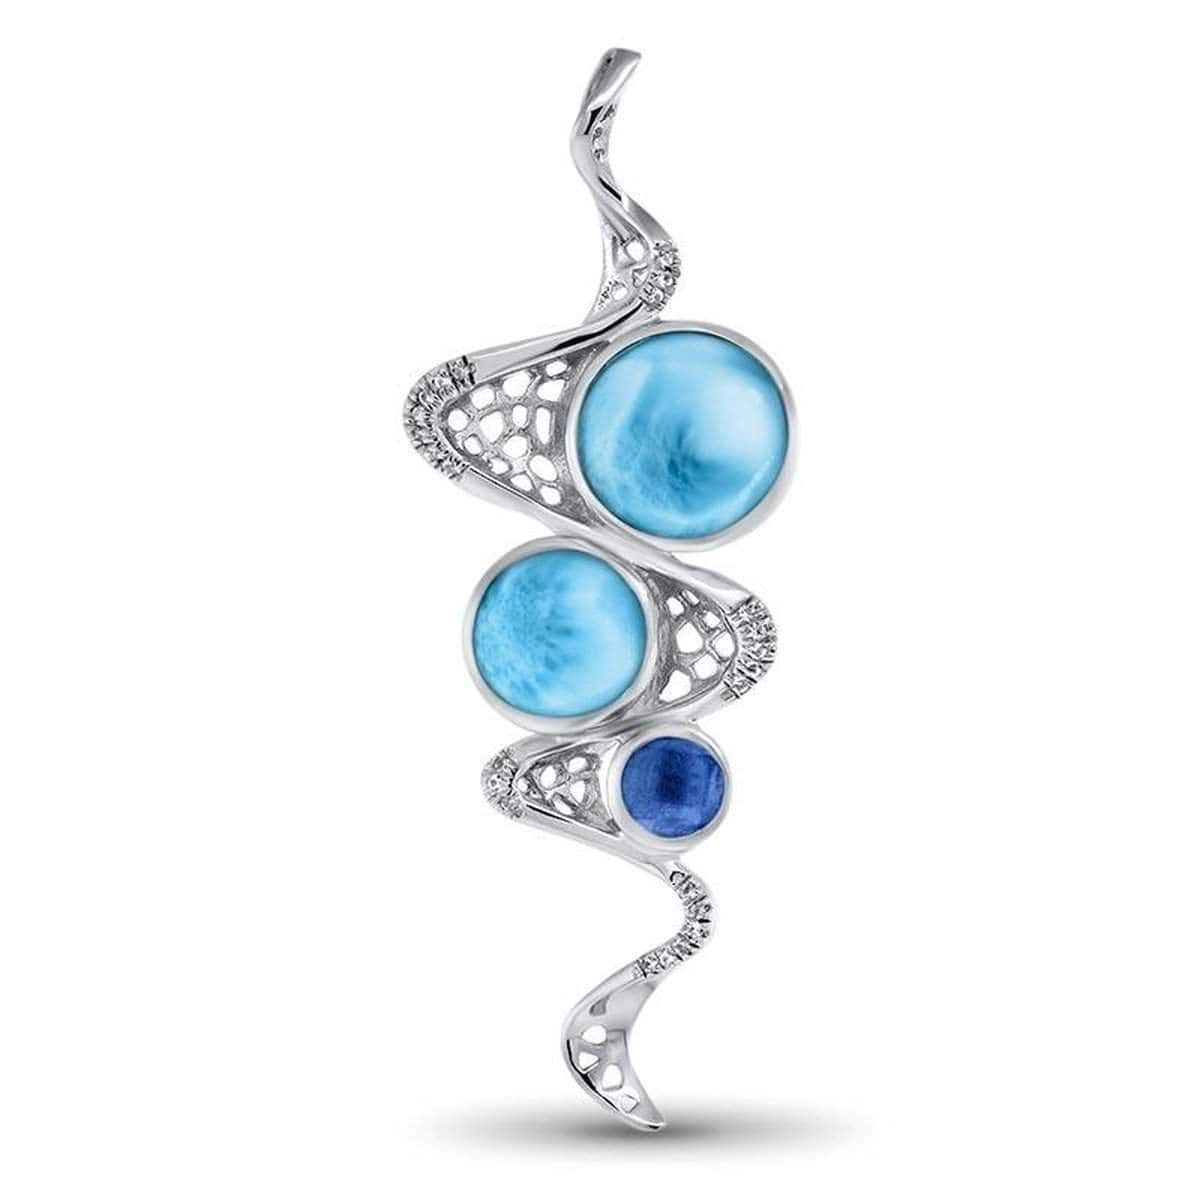 Versailles Blue Spinel Necklace - Nvers00-00-Marahlago Larimar-Renee Taylor Gallery